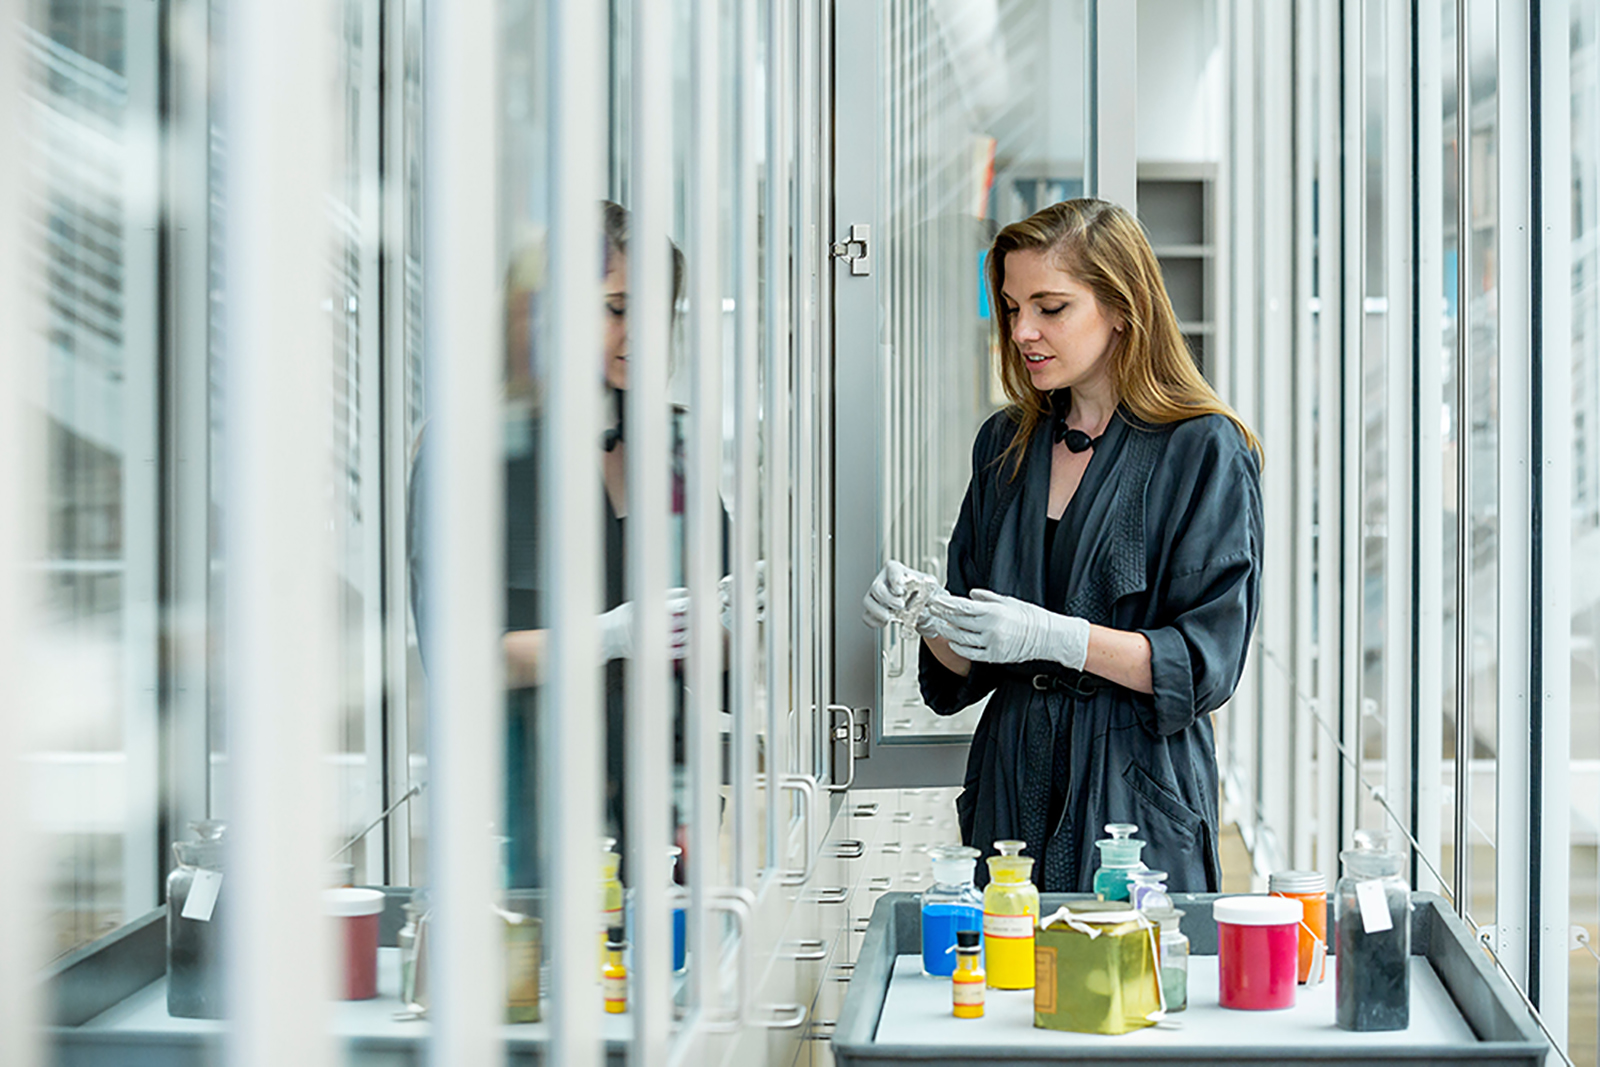 Woman standing beside the Forbes Pigment Collection cabinets handles materials with gloved hands and has a tray of pigments and materials in front of her.